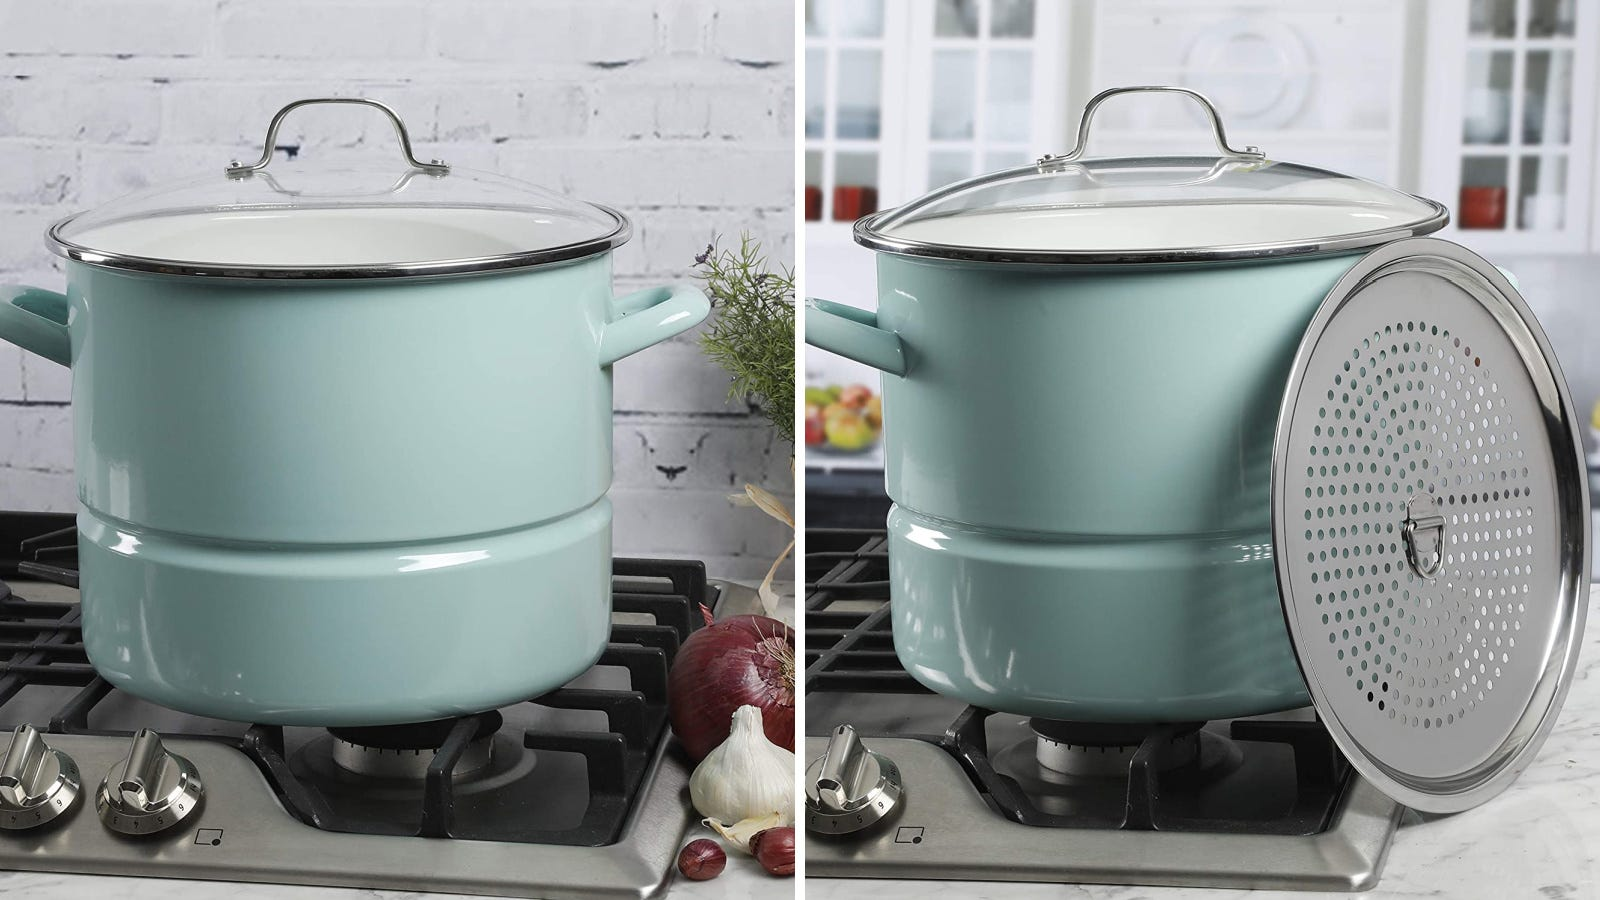 Two images of the Kenmore stockpot and steamer insert, placed on a stove top.